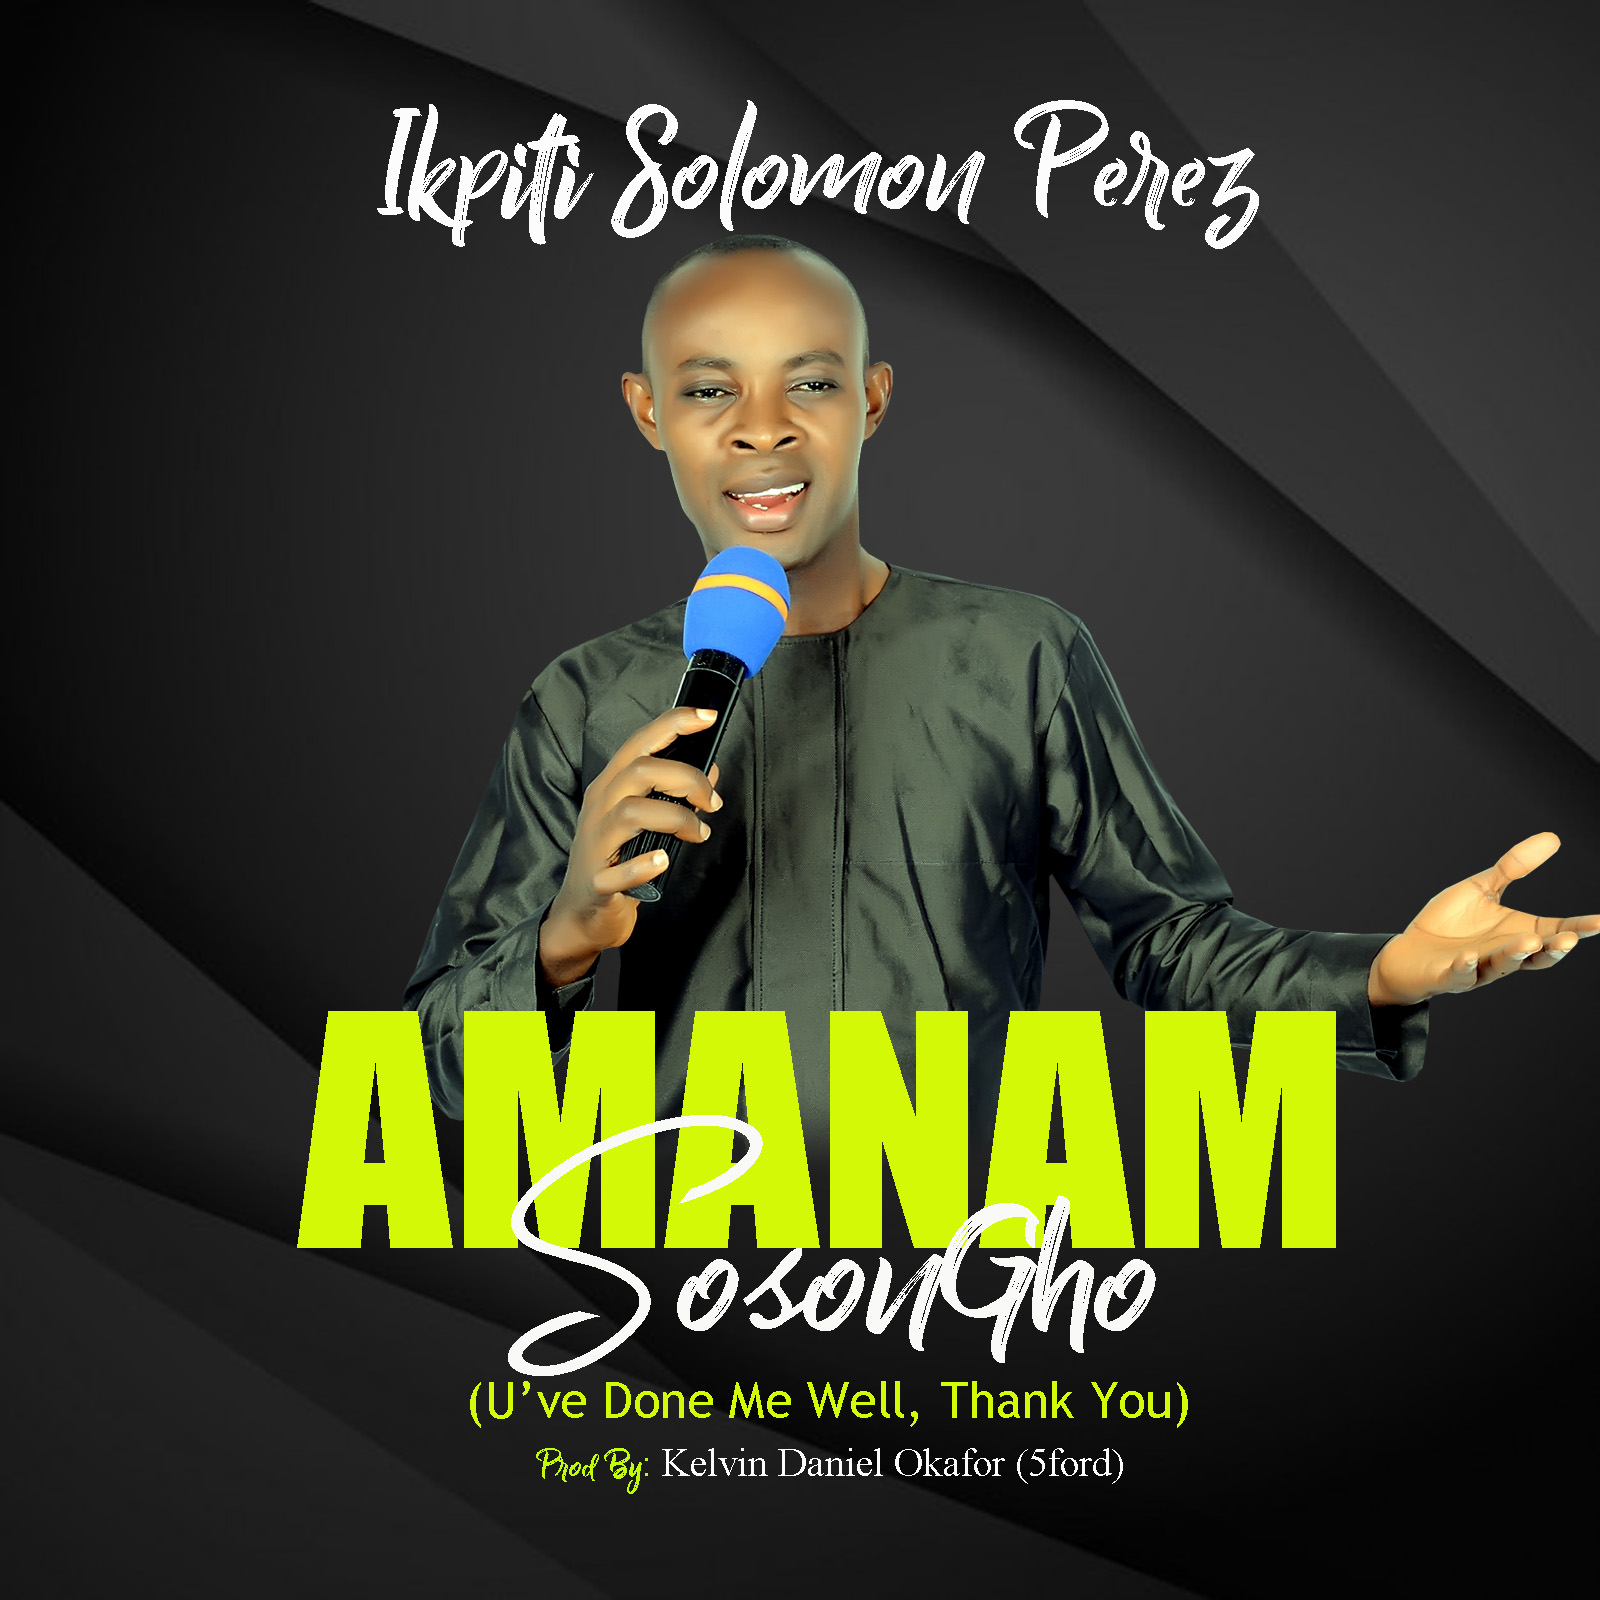 Download album ikpiti solomon perez amanam sosongho free songwriter ikpiti solomon perez releases his first official debut album titled amanam sosongho uve done me well thank you for free download voltagebd Gallery